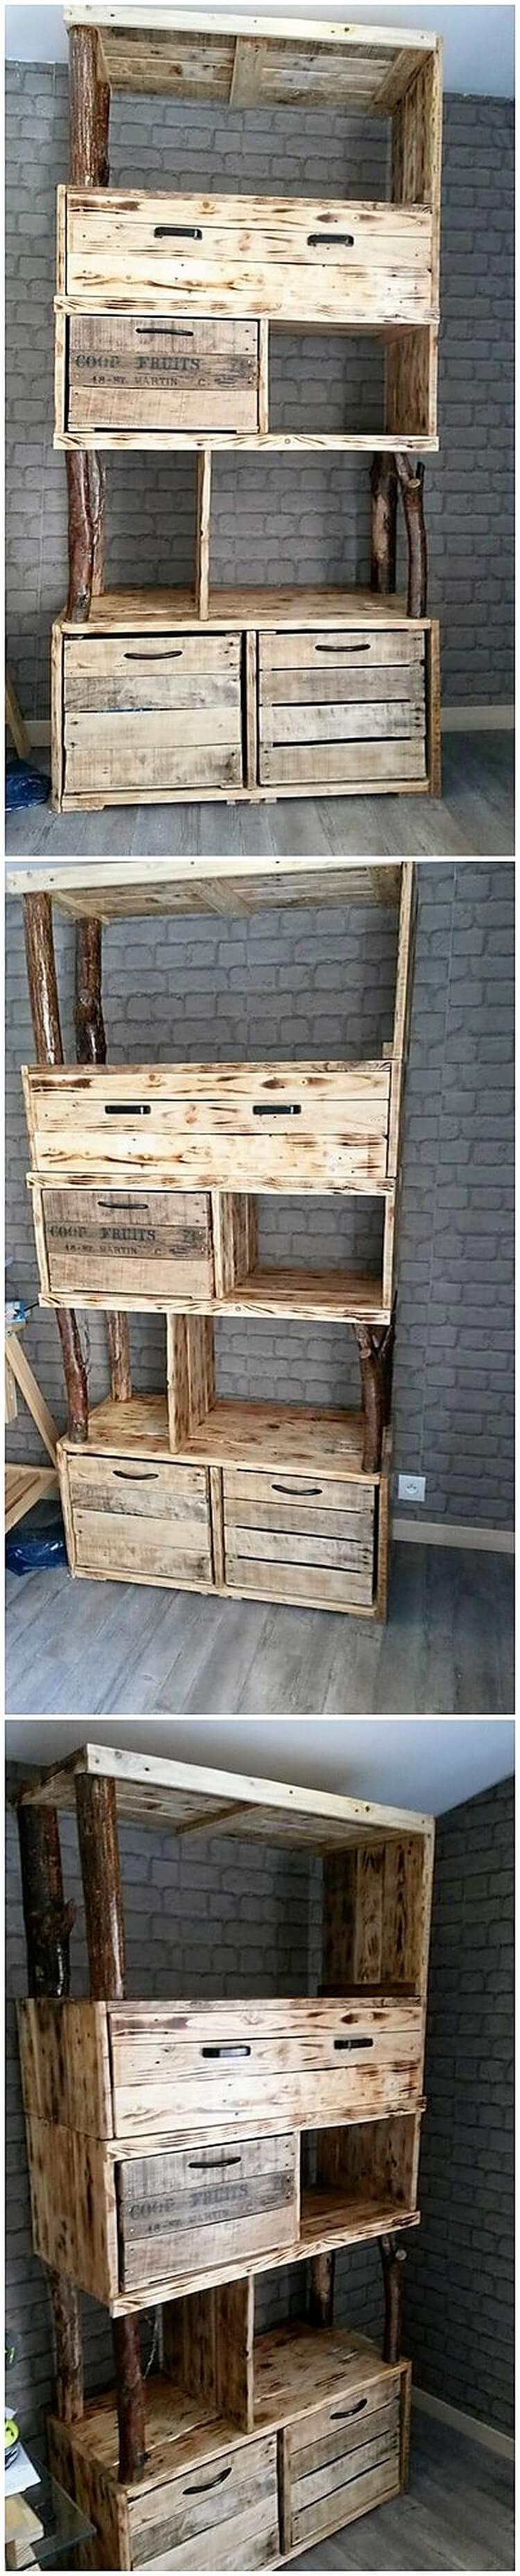 Having The Placement Of The Chest Of Drawers Idea With